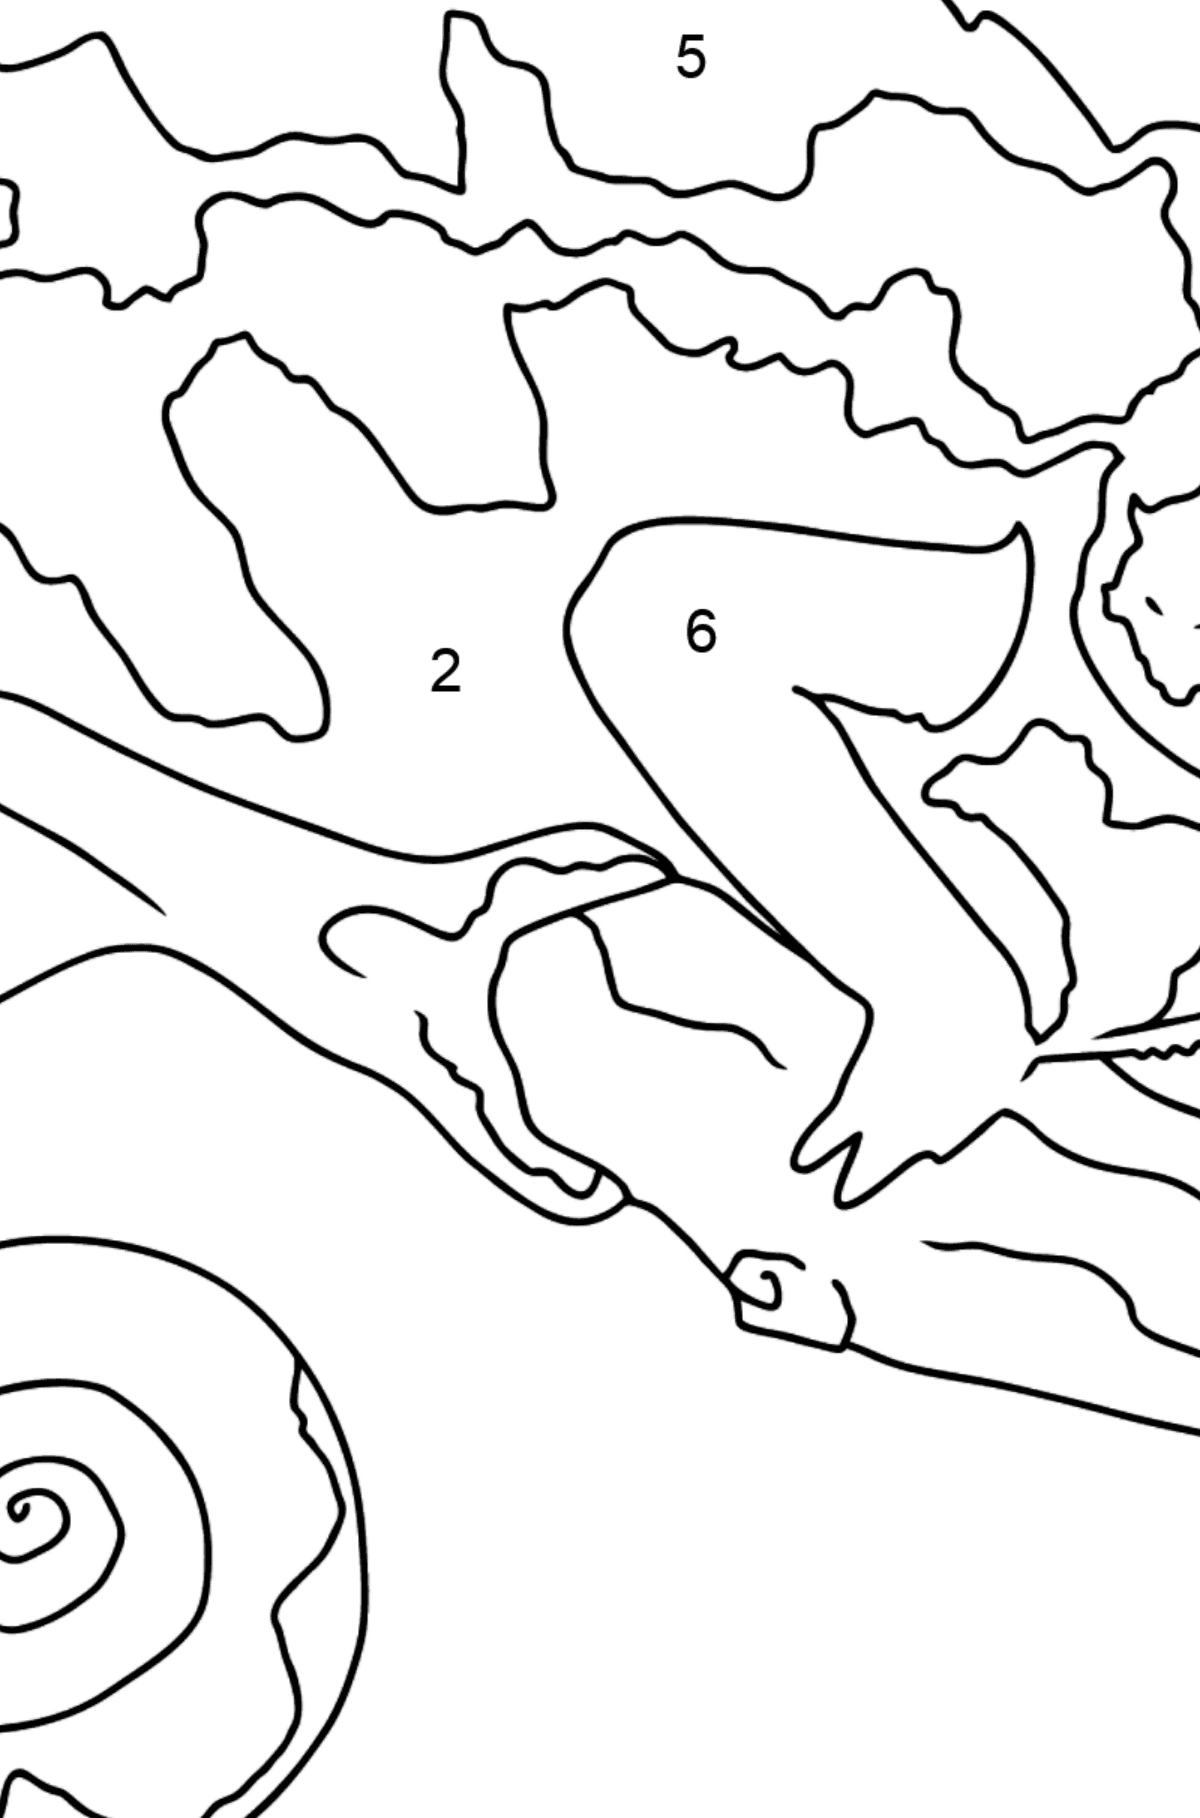 Coloring Page - A Chameleon is Having a Rest - Coloring by Numbers for Kids